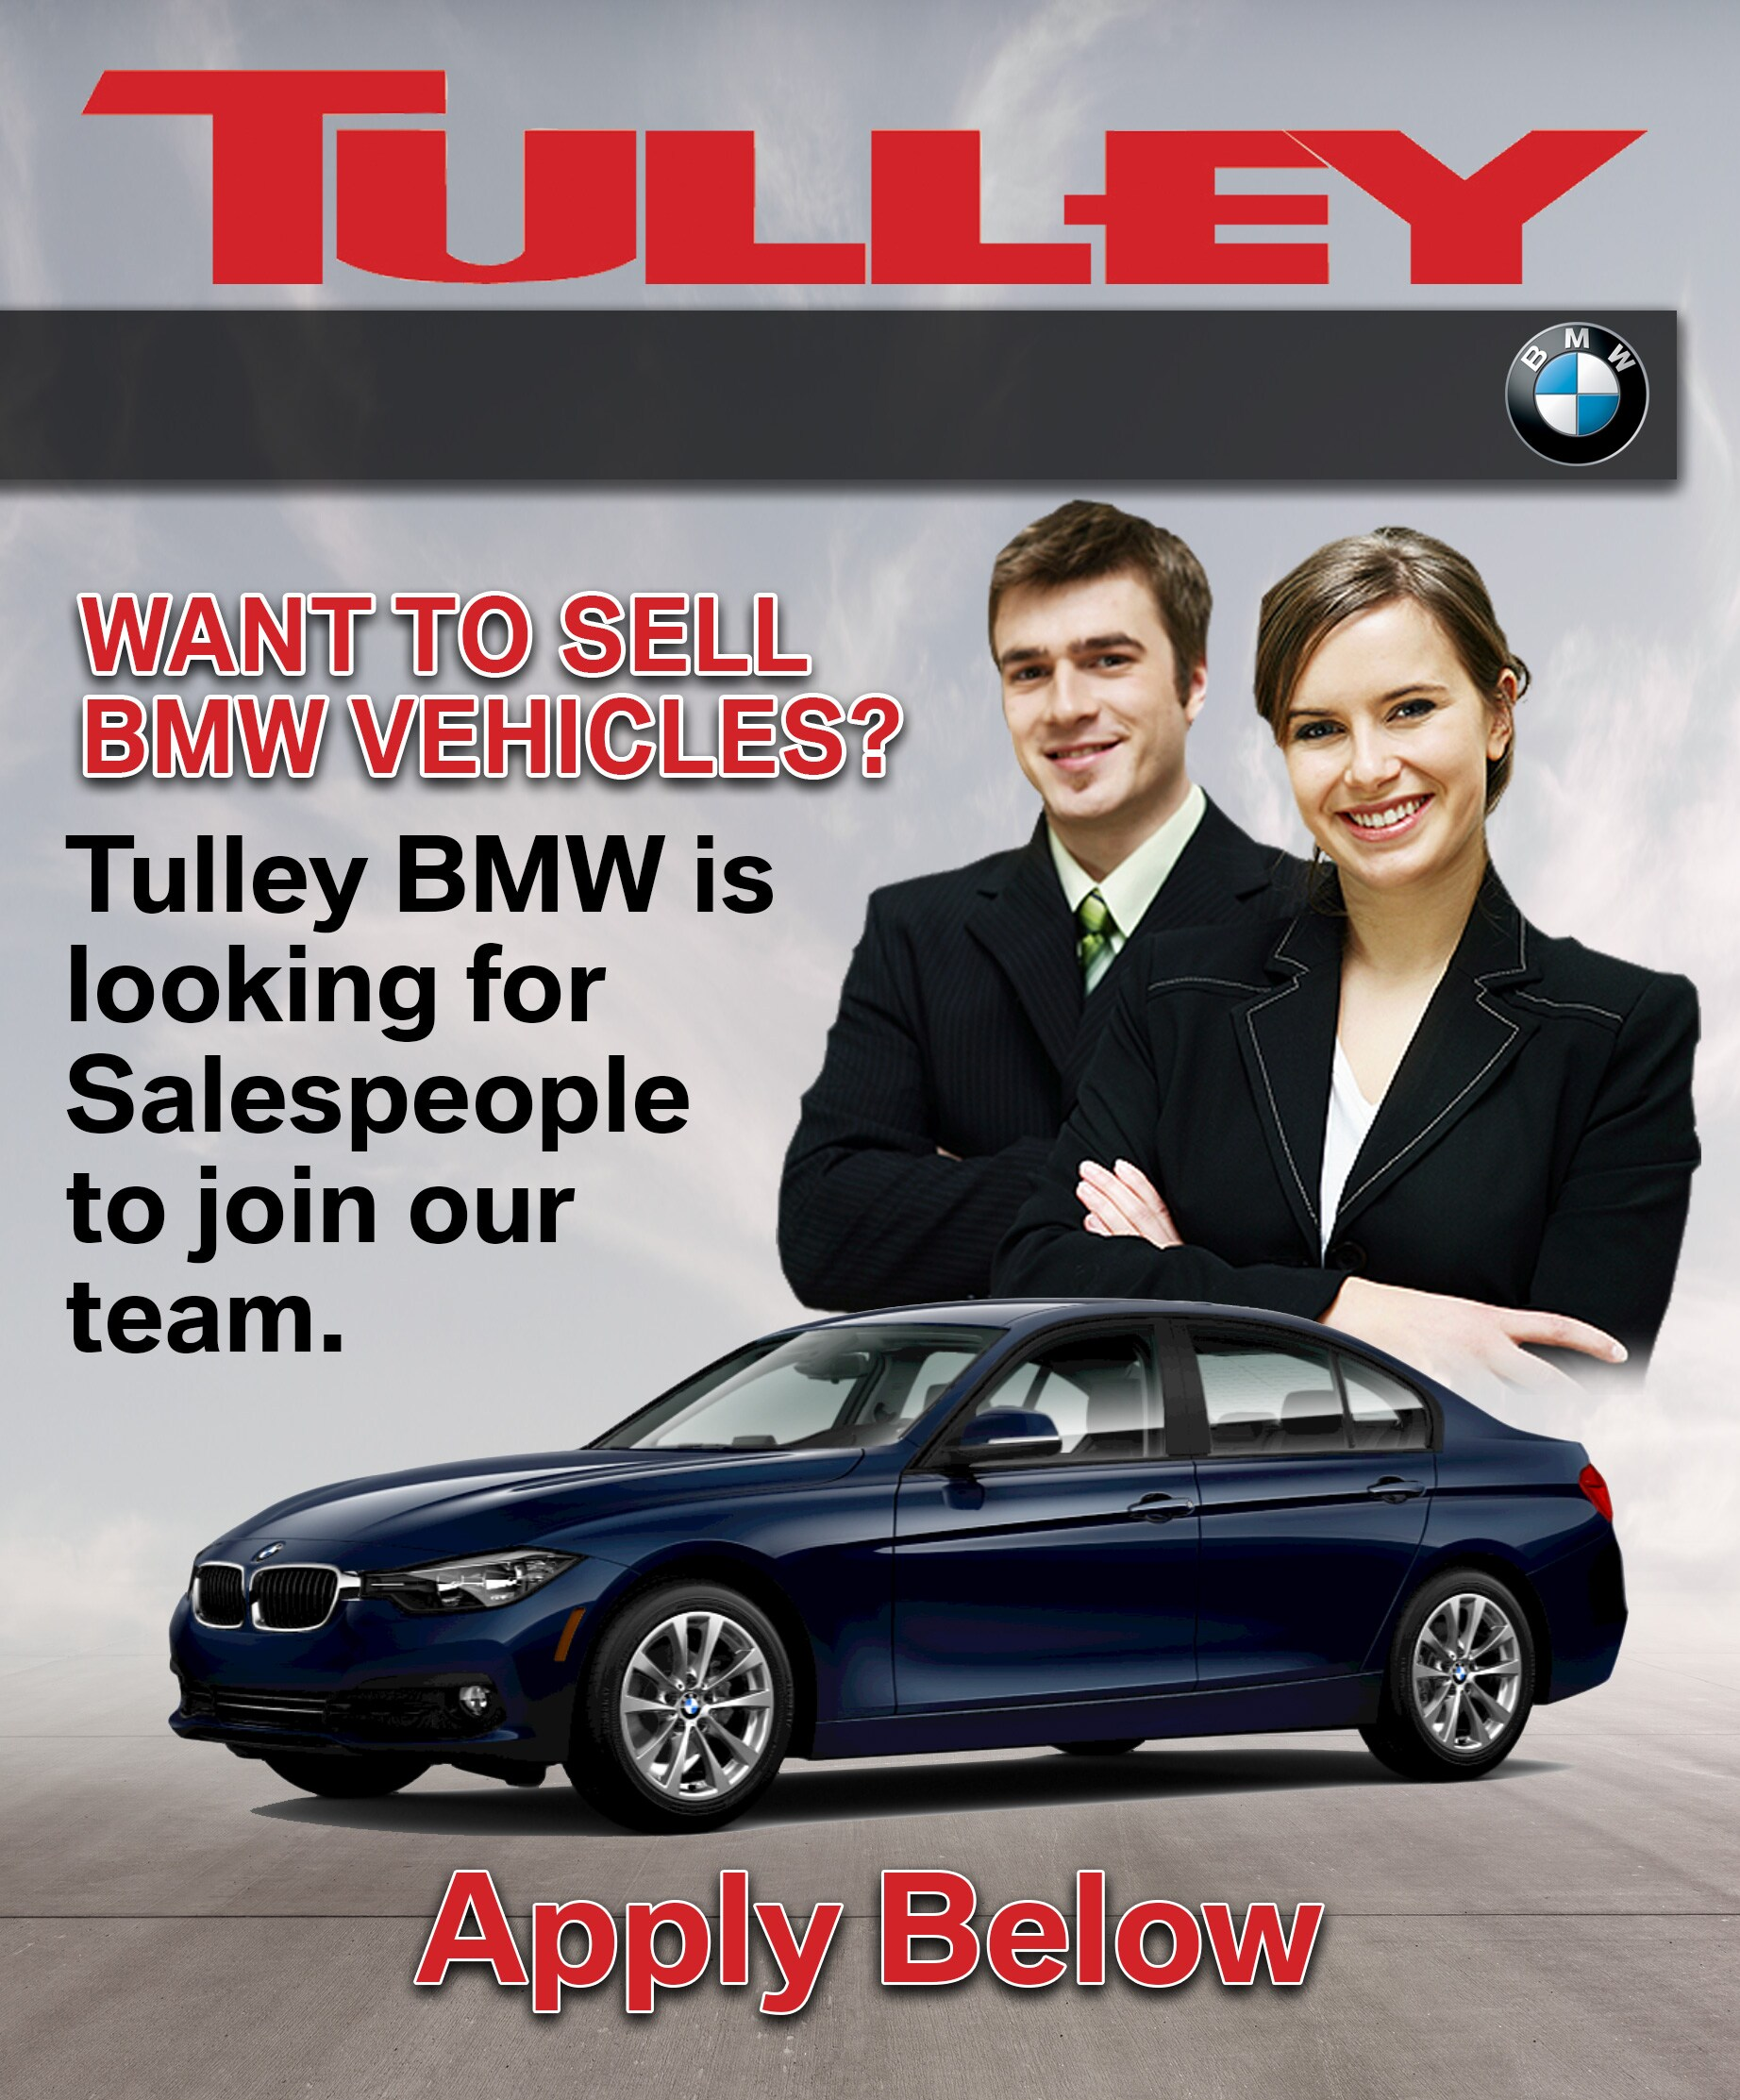 Tulley BMW Of Manchester